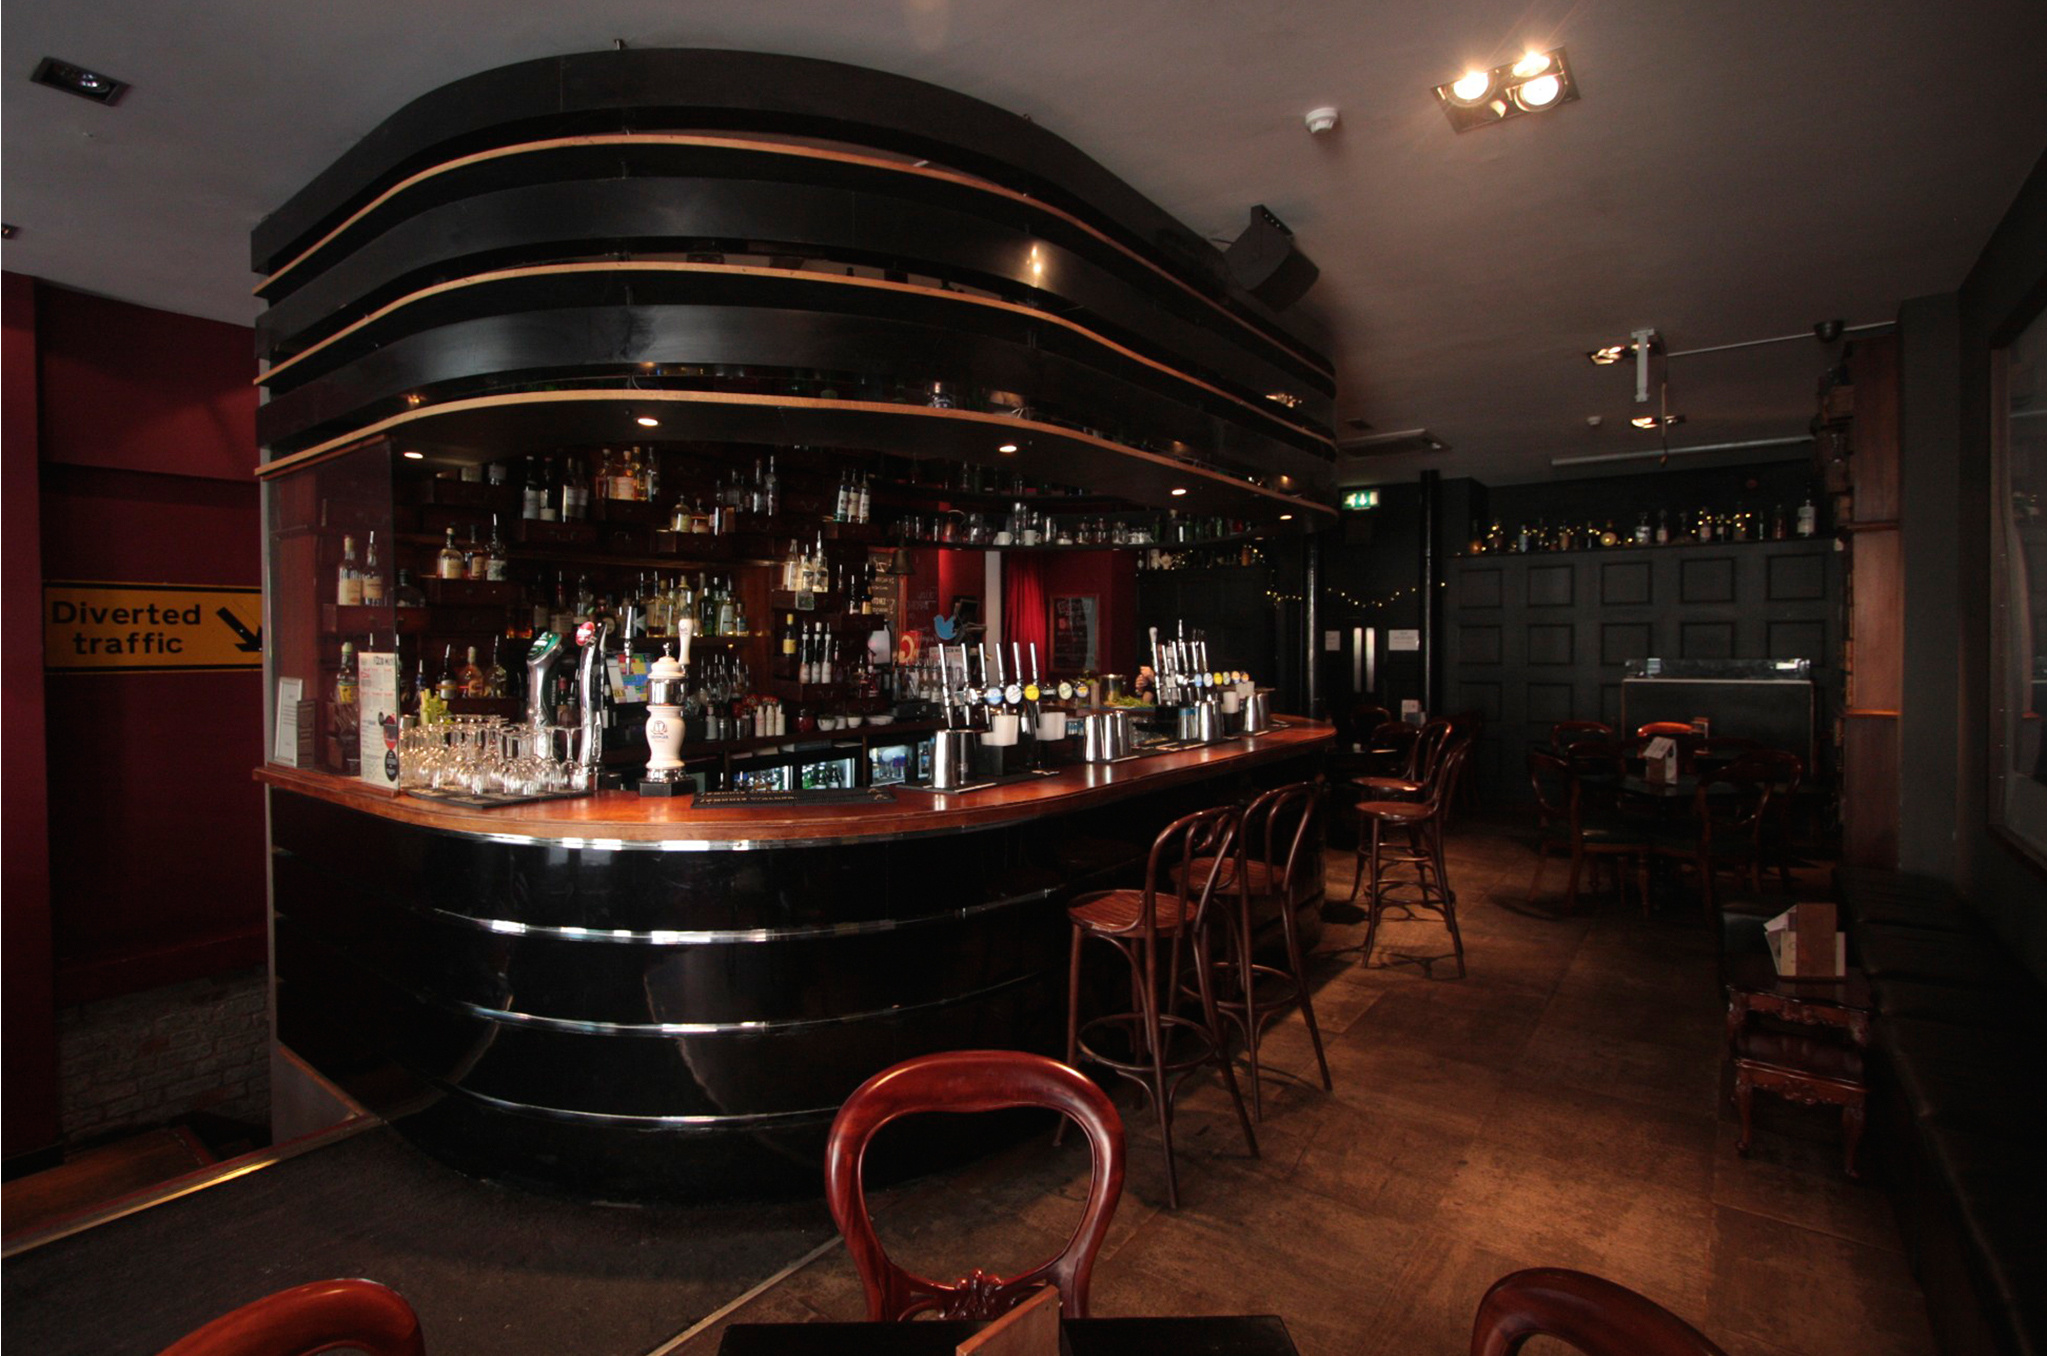 Manchester bars pubs manchester bars reviews pub events time out manchester - Pictures of bars ...